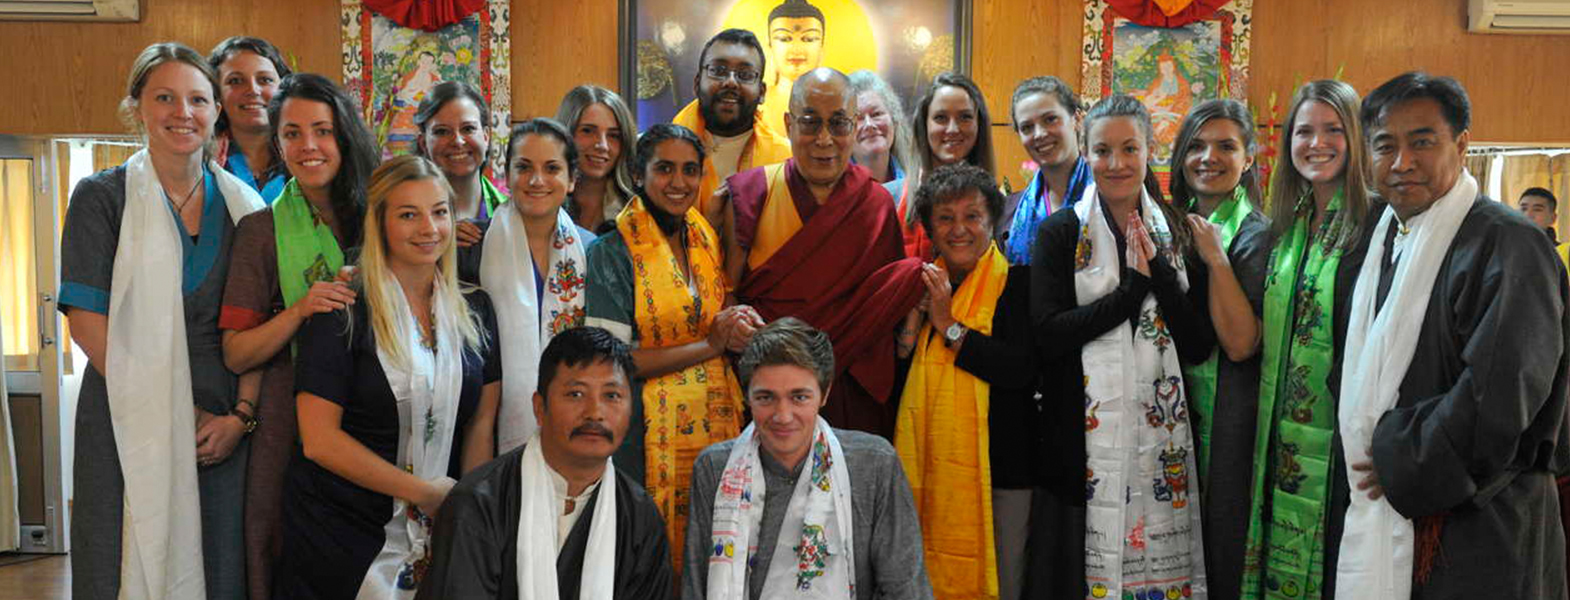 Meeting the Dalai Lama enriches practicum experience